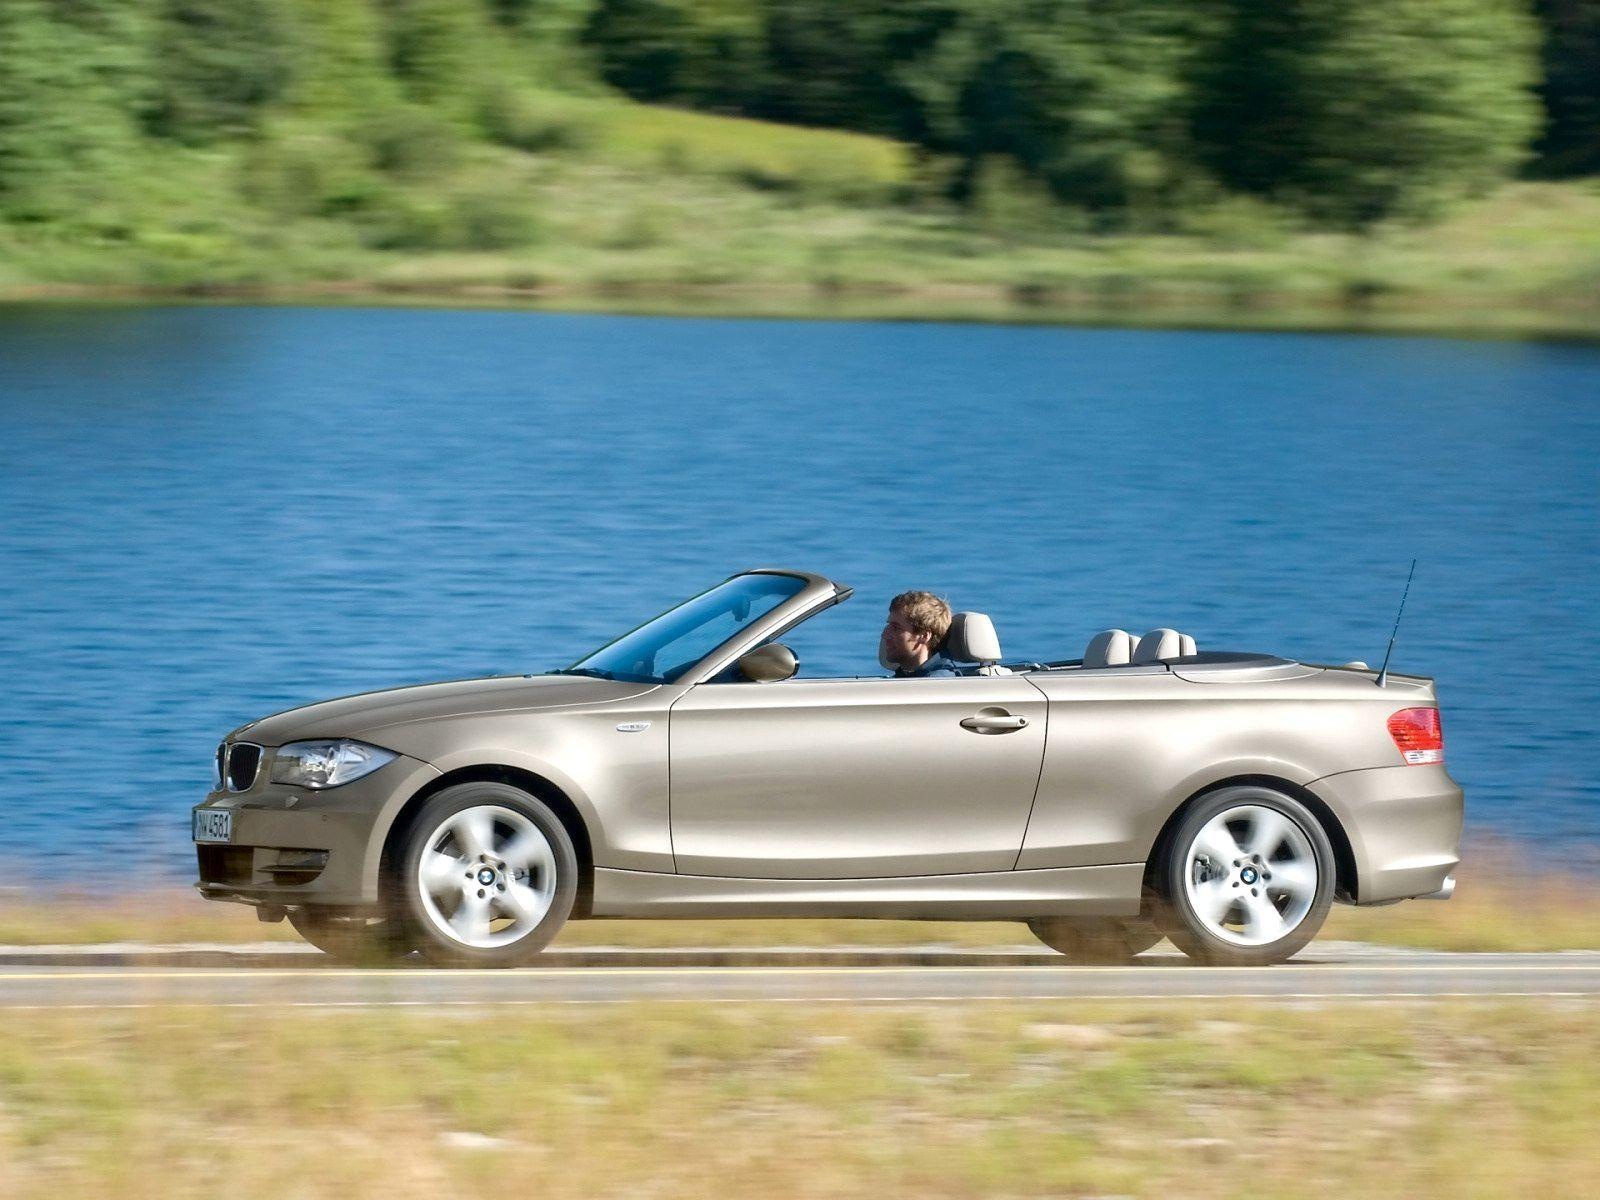 2008 BMW 1 Series Convertible Wallpaper 01 - 1600x1200